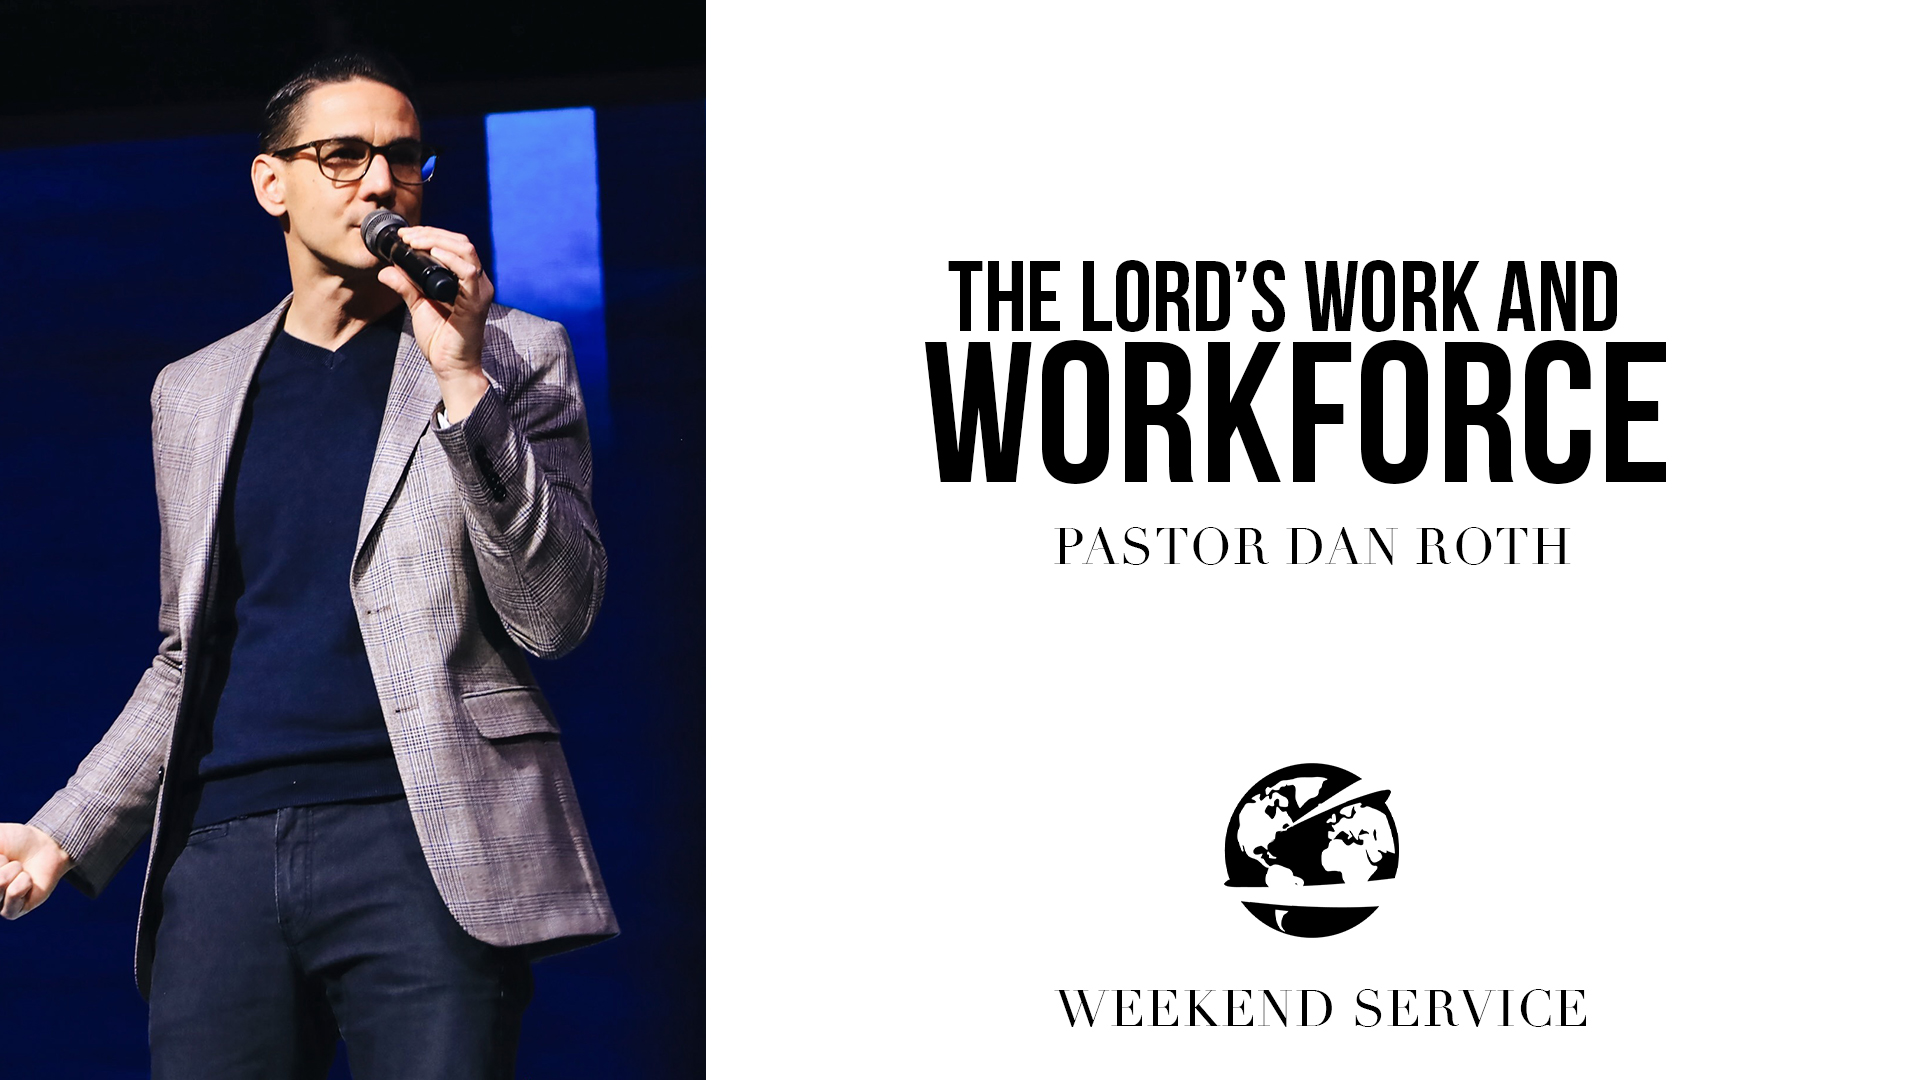 Watch The Lord's Work and Workforce Part 2